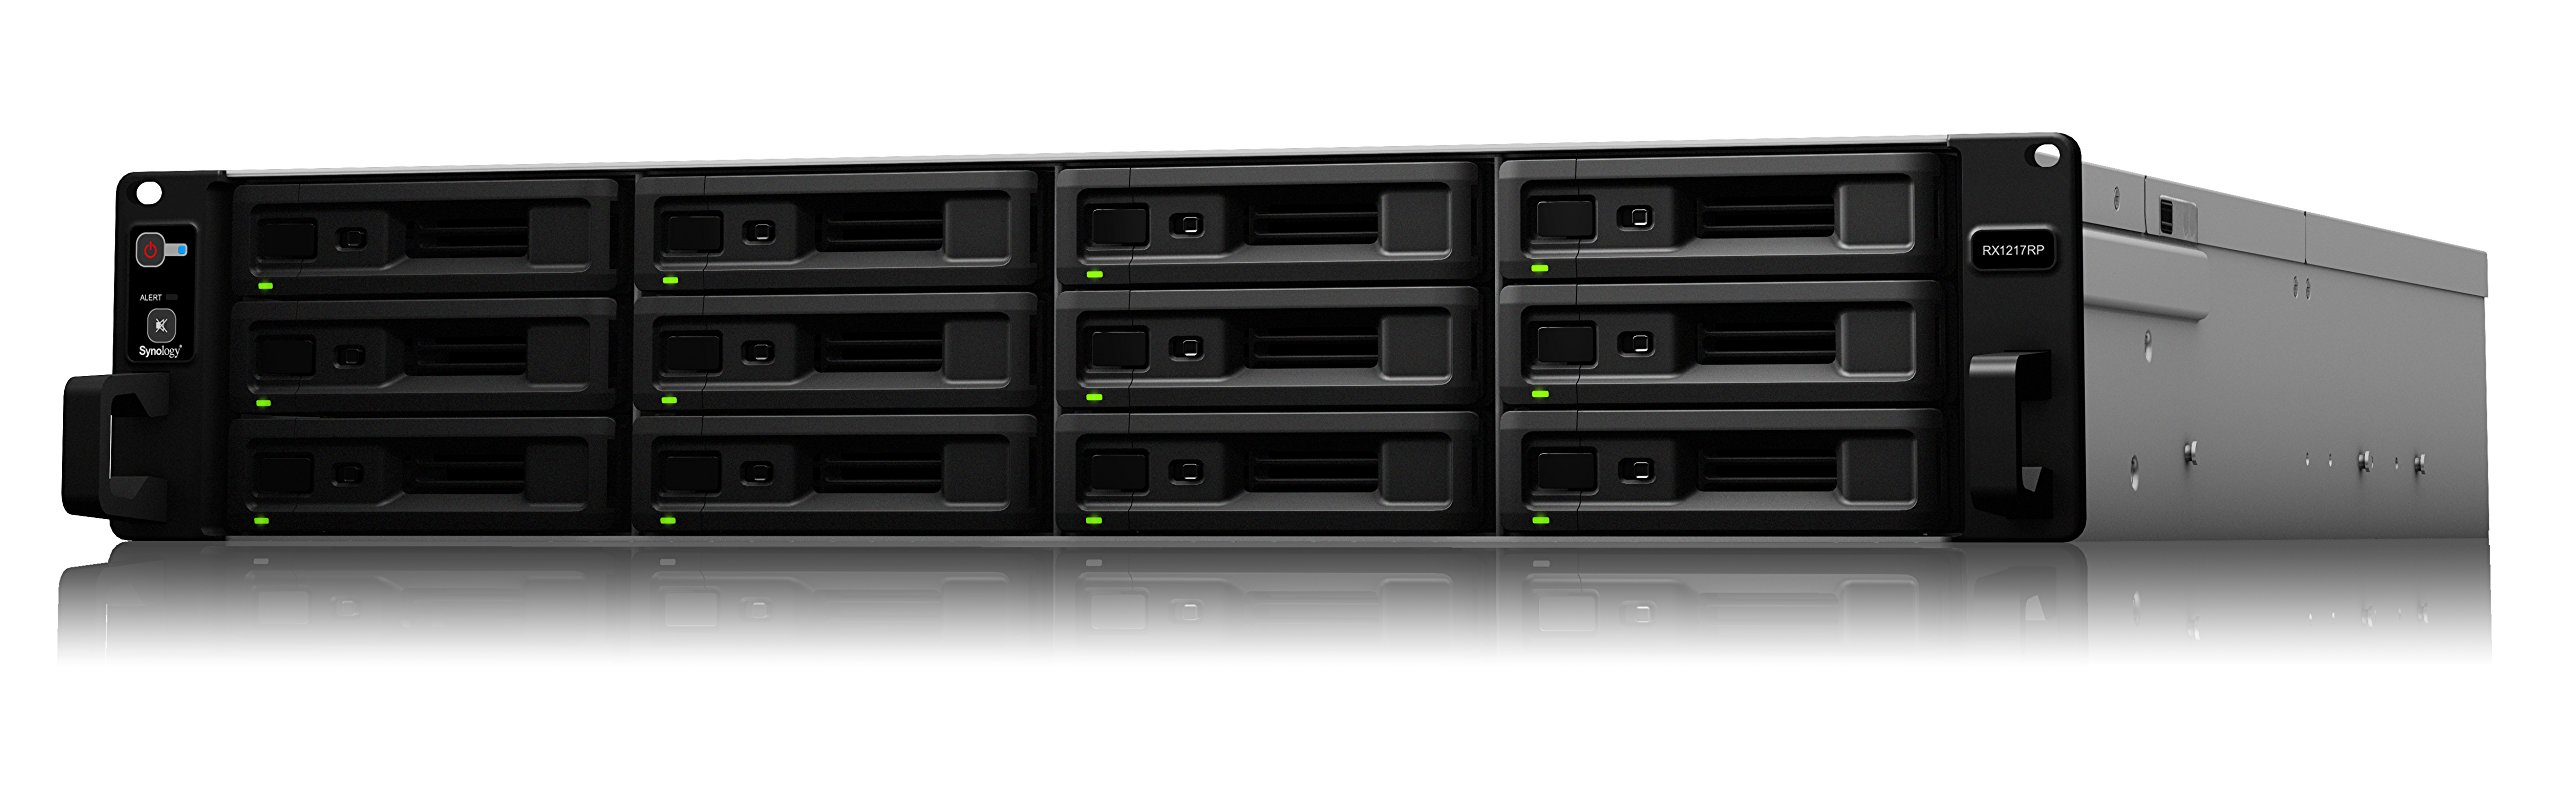 Synology RX1217RP Redundant Power Expansion for RackStation (Diskless) 1 Plug-n-use design for seamless storage space upgrade Online volume expansion on the fly Redundant power supplies ensure service uptime